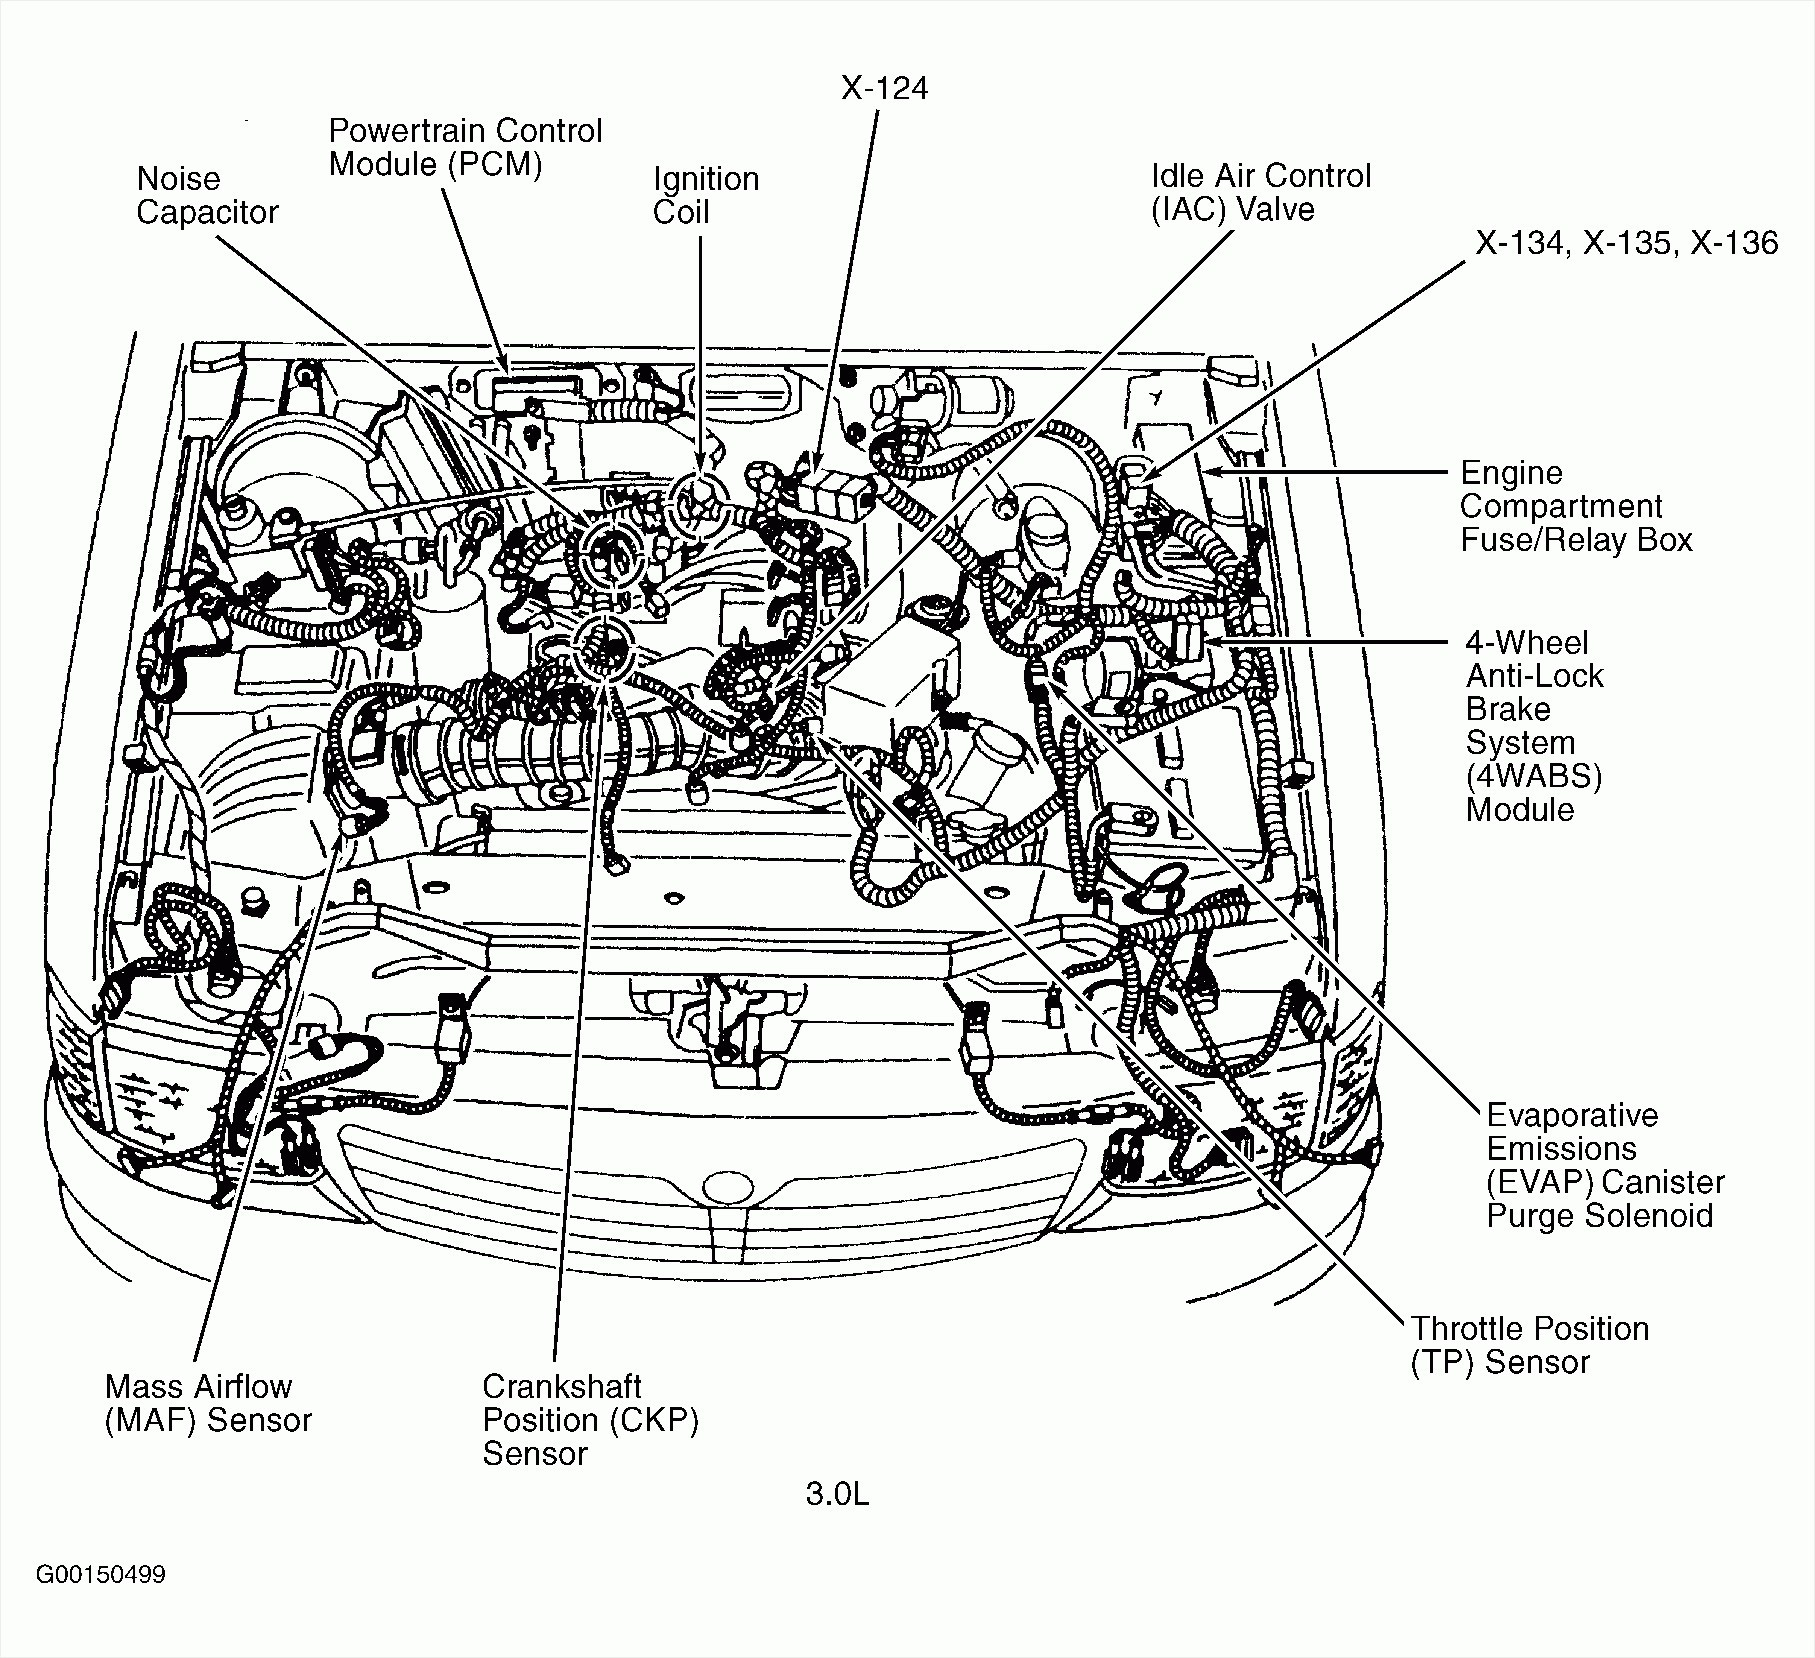 2001 Eclipse Engine Diagram - Wiring Diagram Data Schema on 258 engine diagram, low voltage lighting wiring diagram, s10 vacuum line diagram, 1978 trans am vacuum diagram, vacuum packing, vacuum motor diagram, vacuum switch diagram, vacuum circuit breaker, vacuum pump, vacuum assembly diagram, vacuum installation diagram, vacuum system diagram, vacuum repair diagram, vacuum relay diagram, pressure tank plumbing diagram, vacuum routing diagram, pump diagram, vacuum sensor diagram, 1983 cj7 vacuum line diagram, vacuum control diagram,